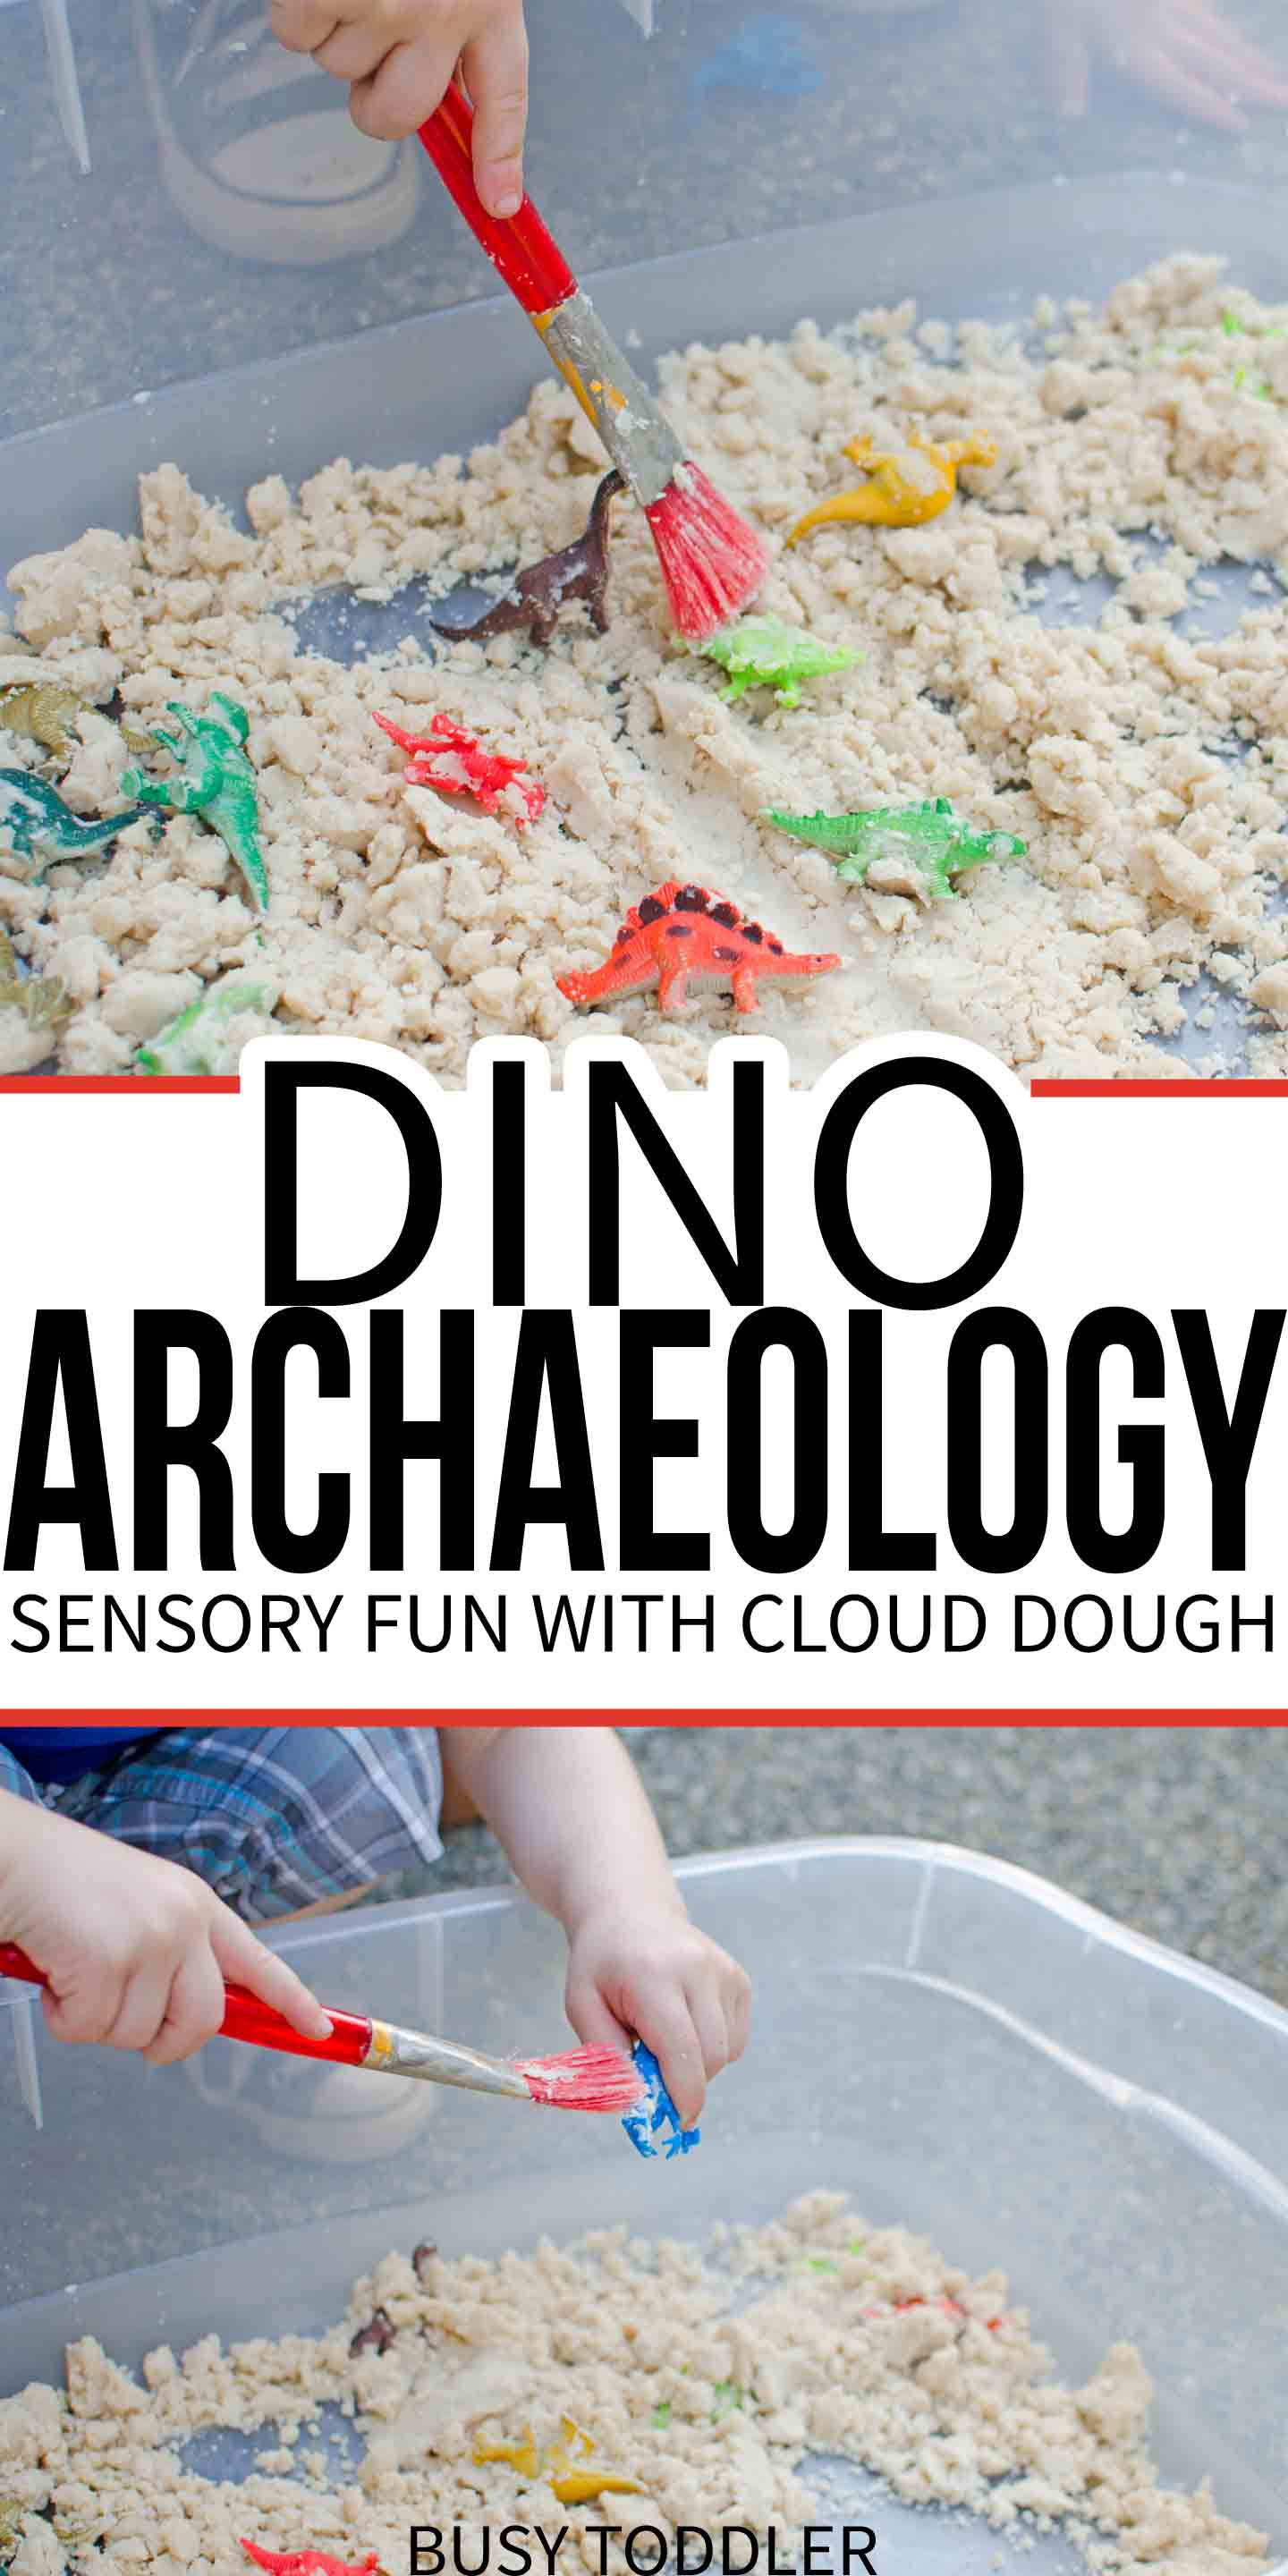 DINOSAUR ARCHAEOLOGY: A fun sensory activity with cloud dough; an easy activity for toddlers and preschoolers; simple sensory play